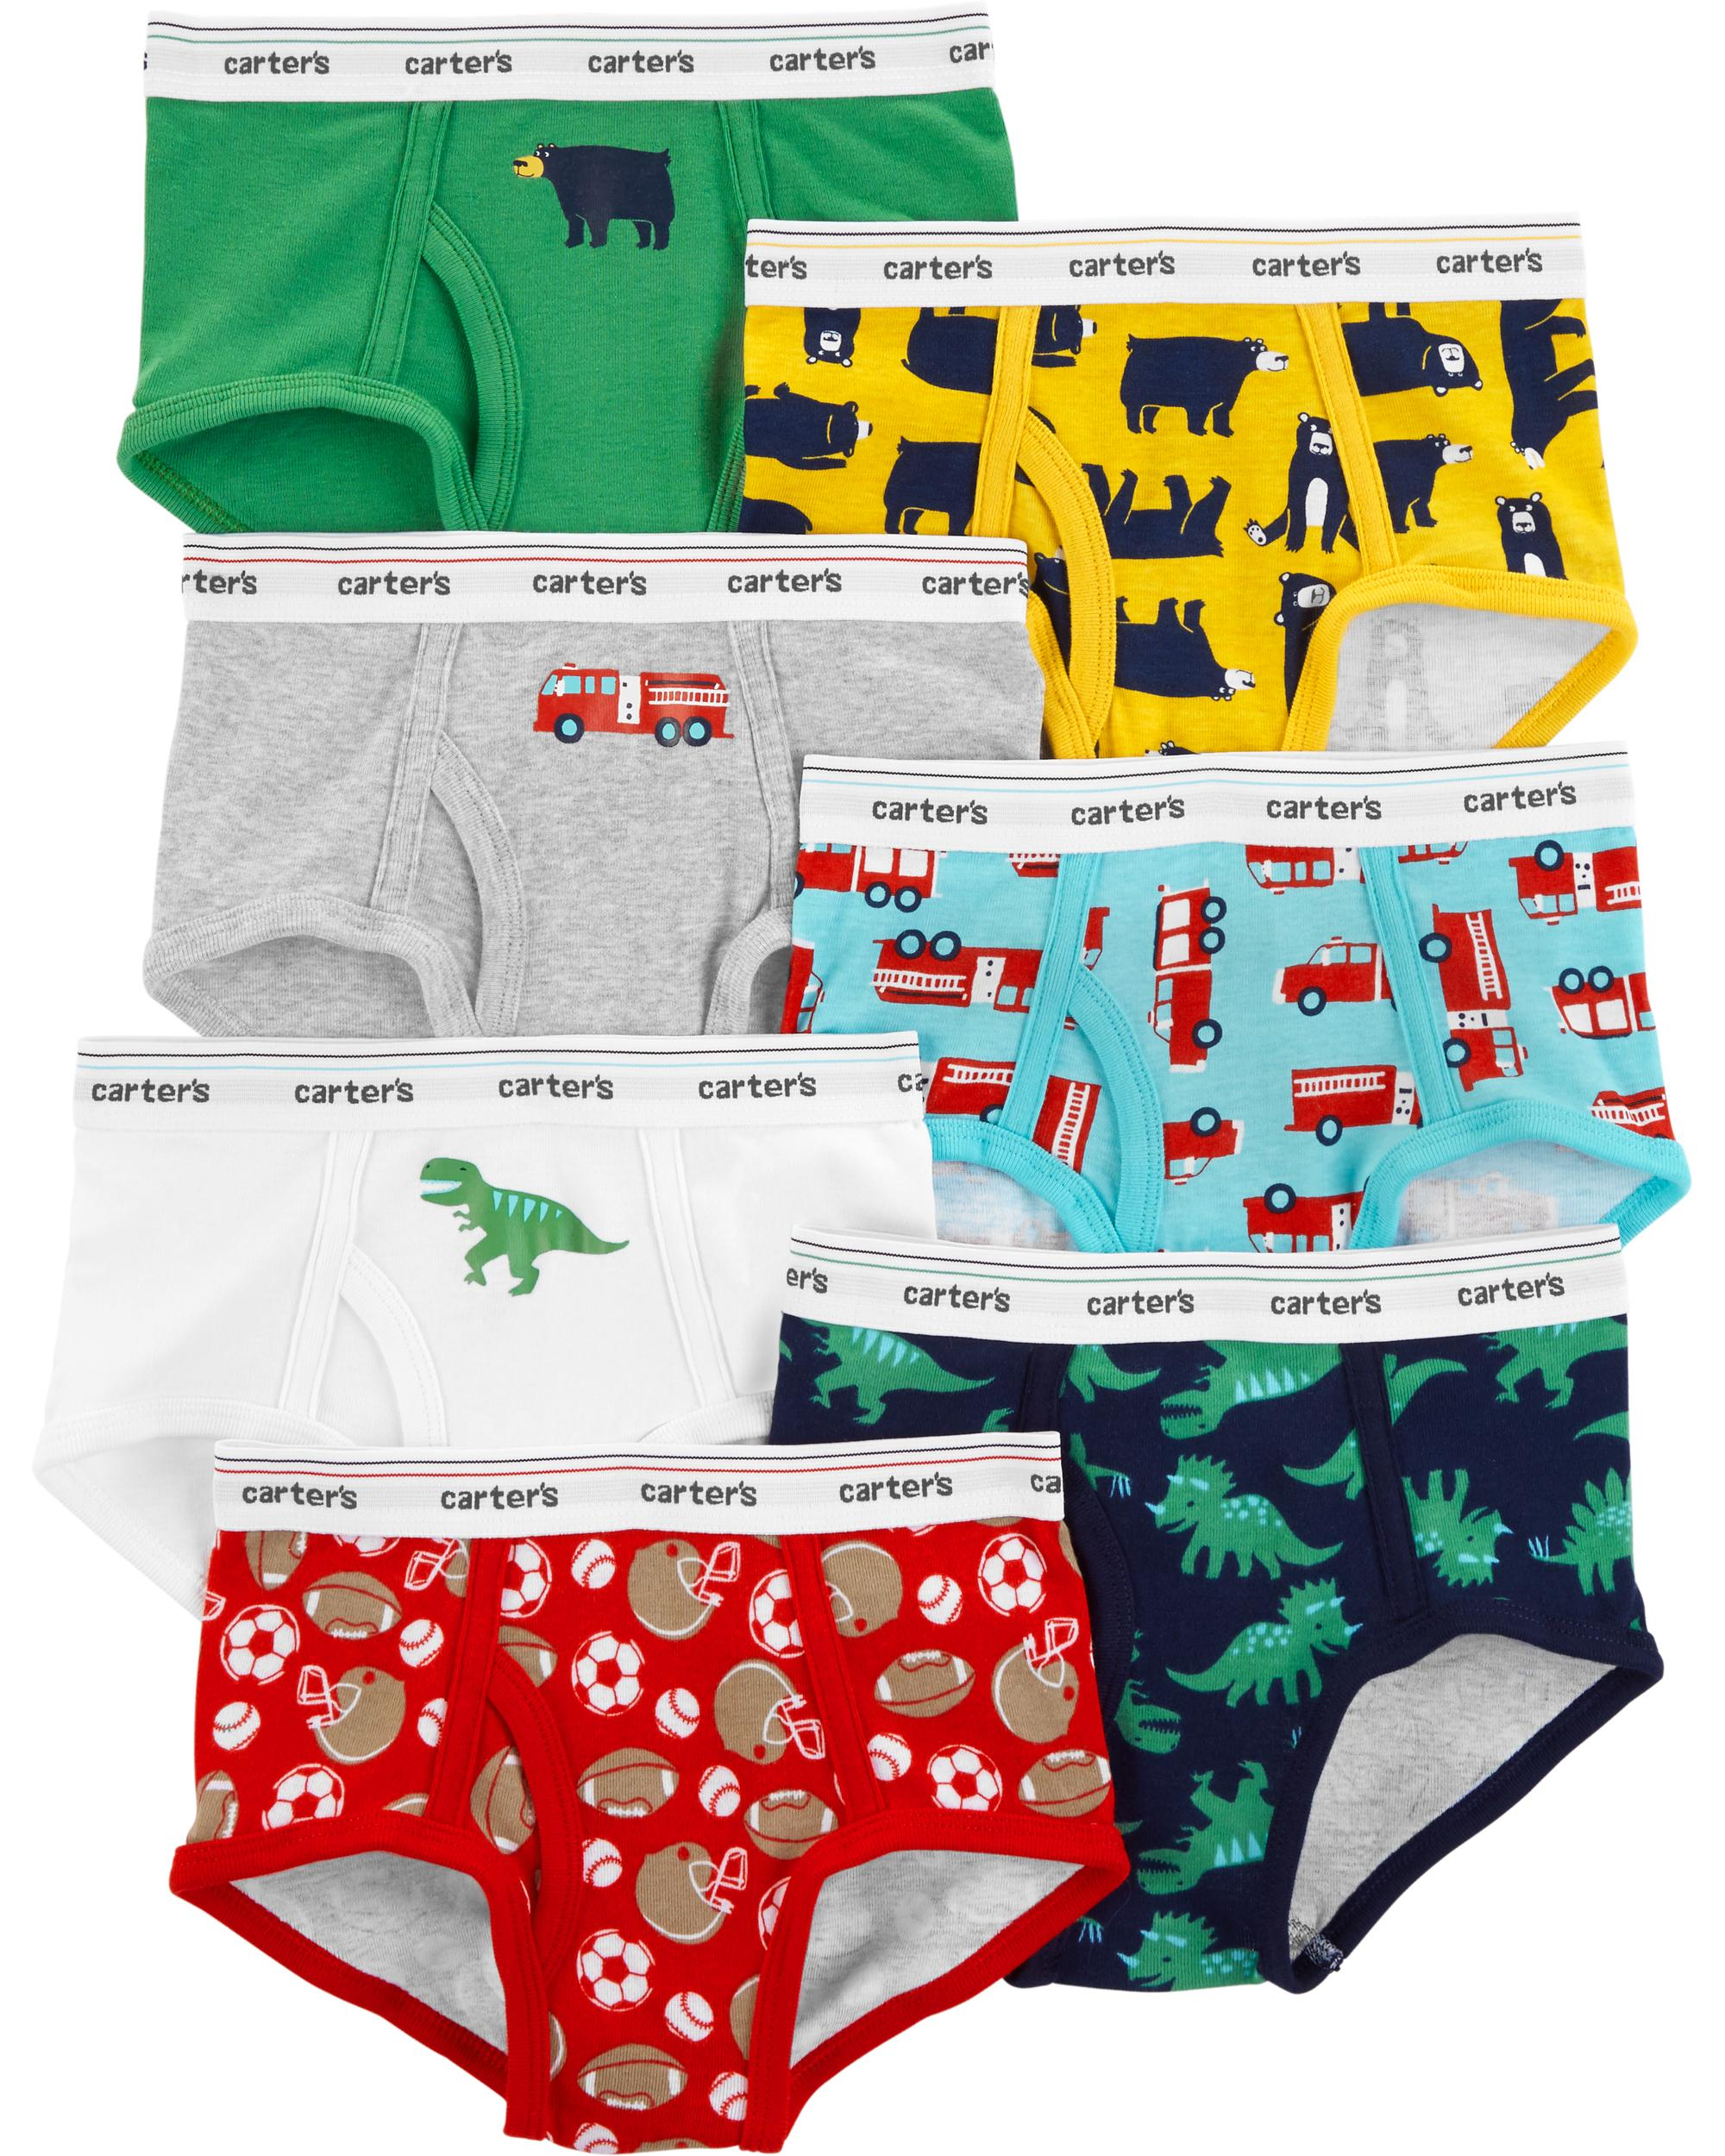 New Carter/'s 10 Pairs Underwear Boy Briefs NWT 2T 3T 4T 5T 12 14 year Solid Car